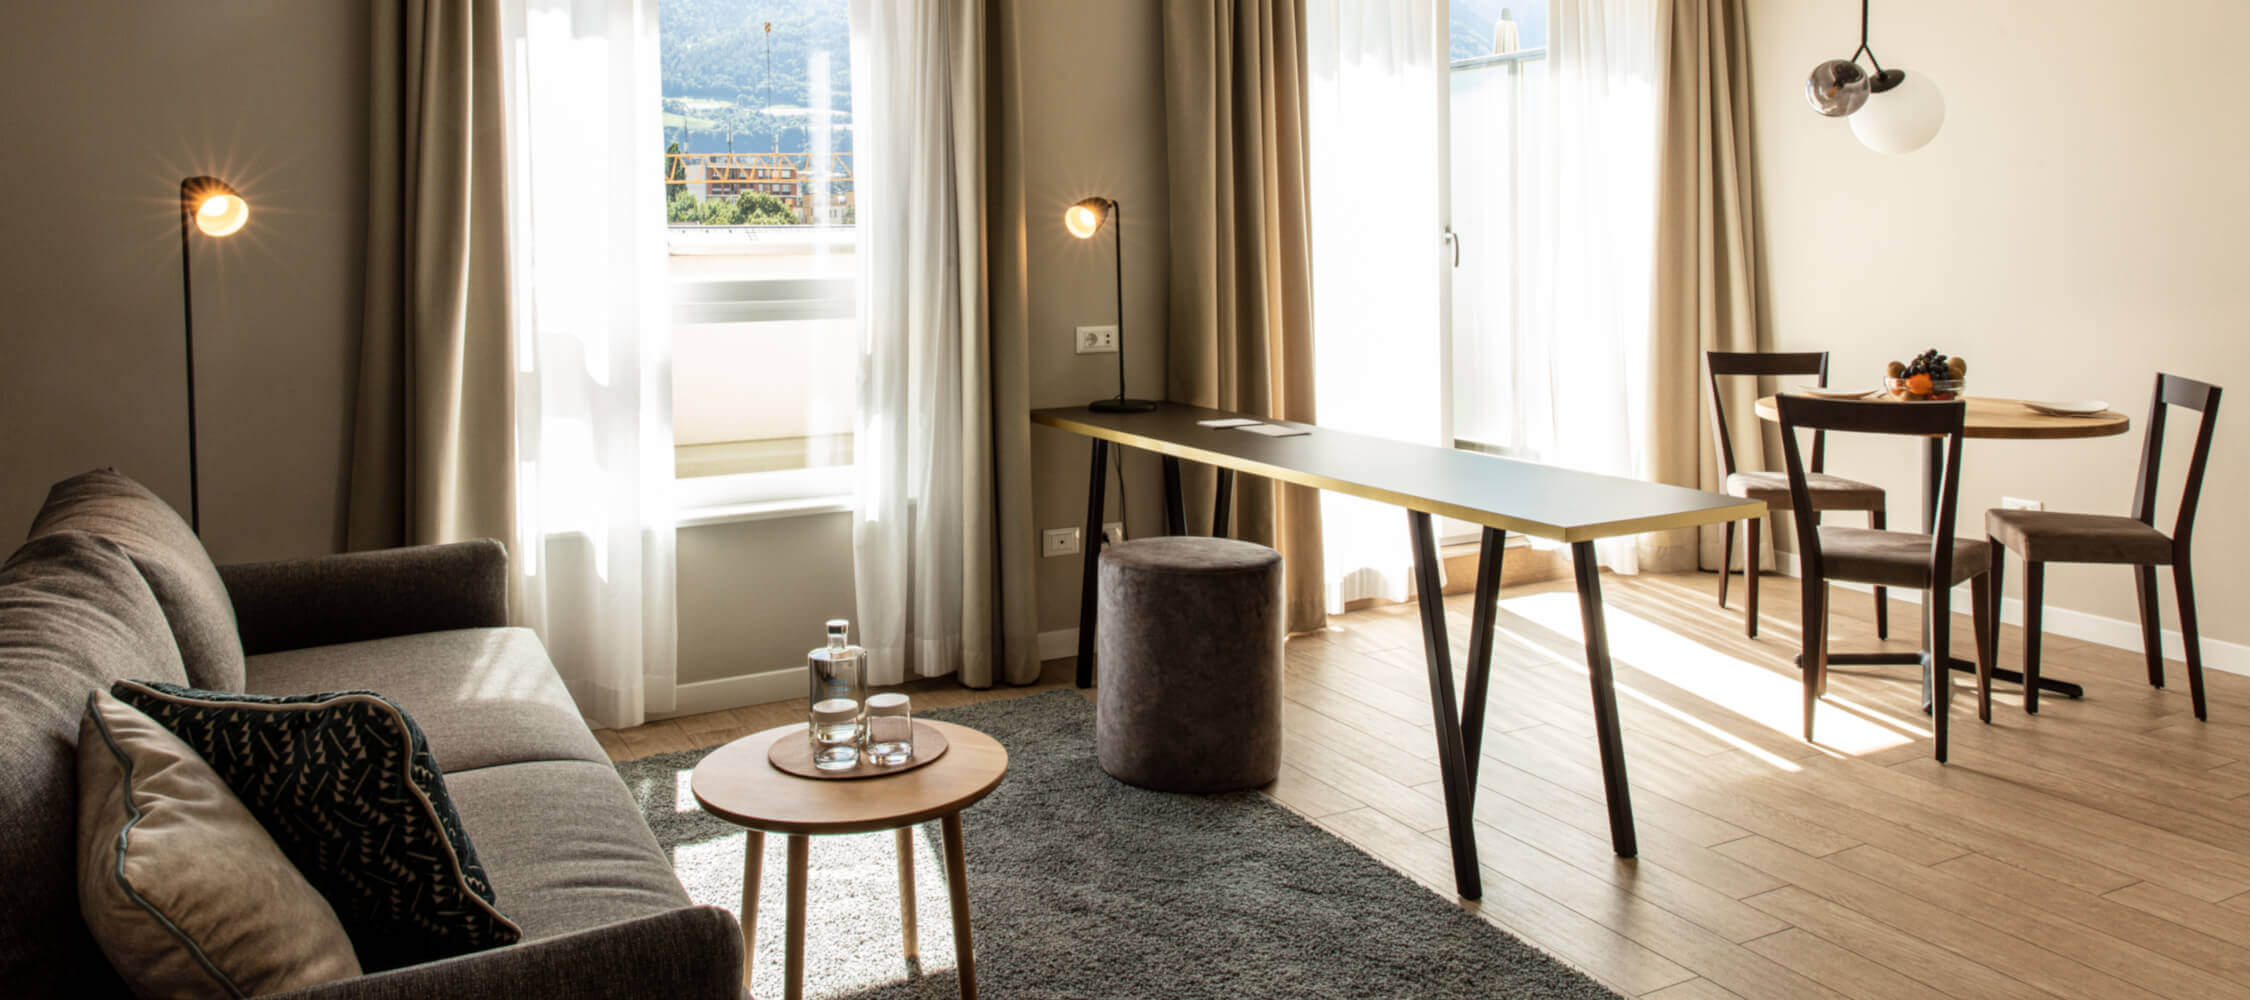 City_Hotel_Merano_Suite_Panoramic_Wohnzimmer_BeatricePilotto_3T1A1718_2250x1000